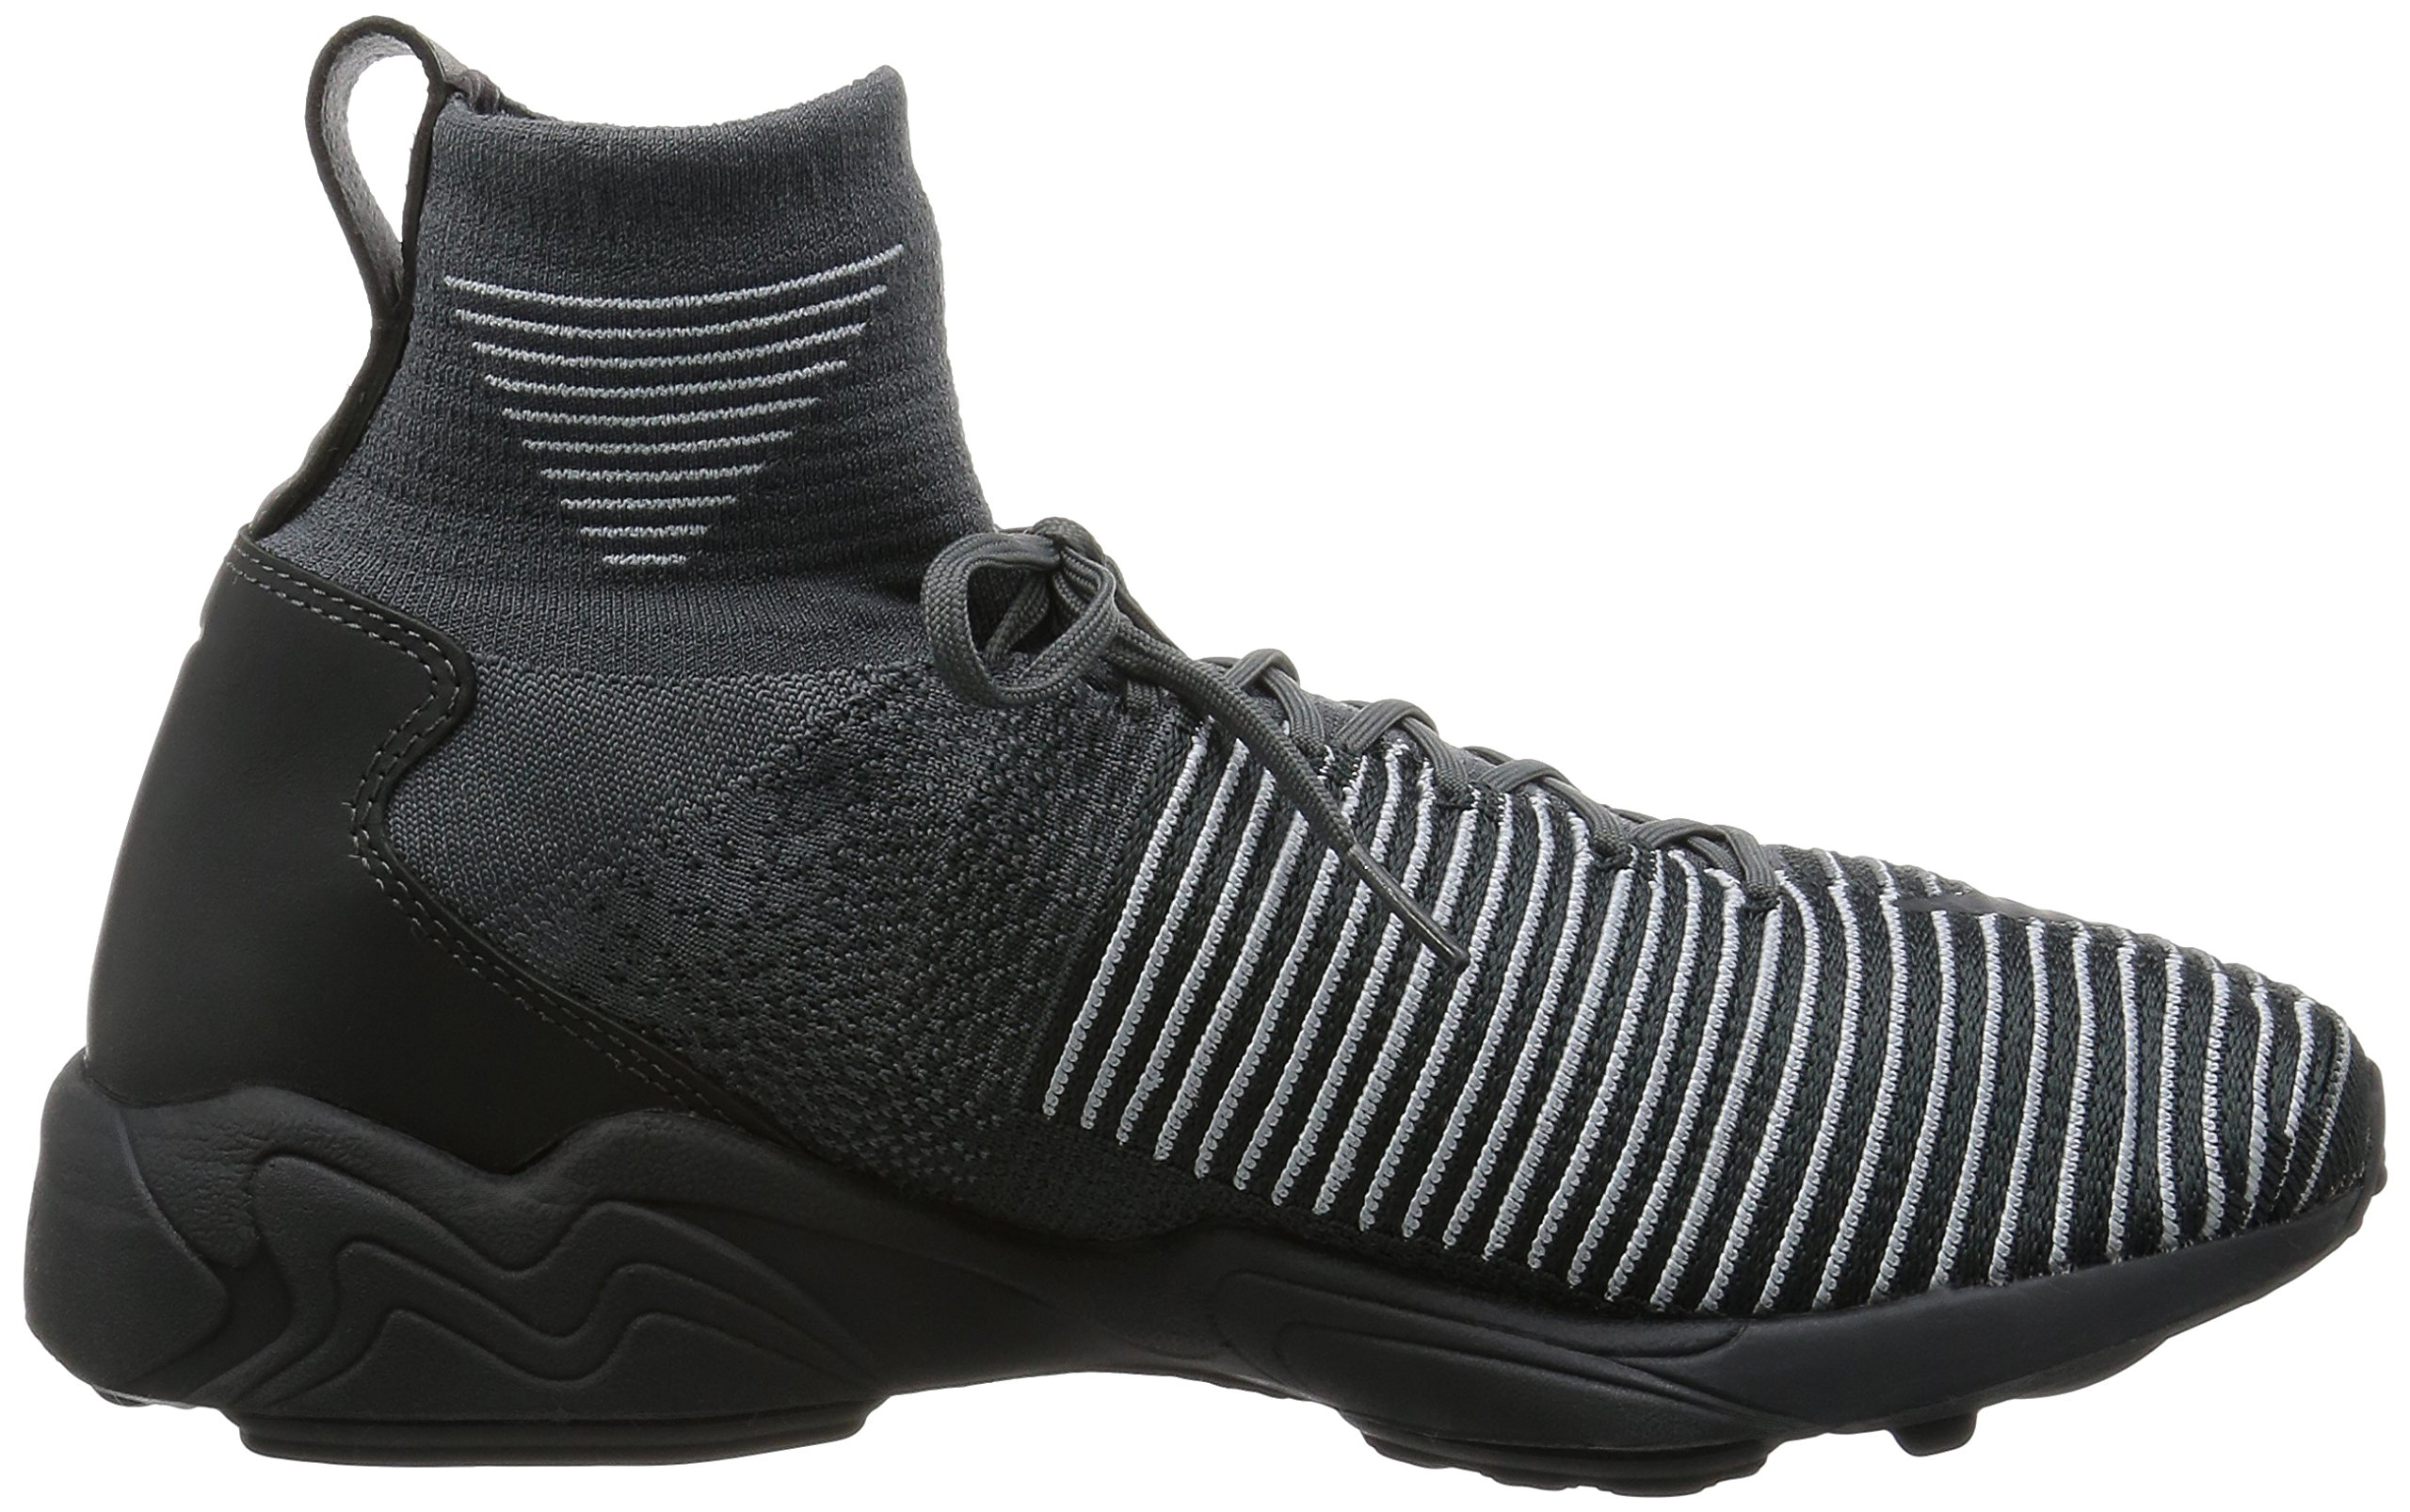 Nike Mens Zoom Mercurial XI FK Dark Grey/Anthracite Fabric Size 11 by NIKE (Image #6)